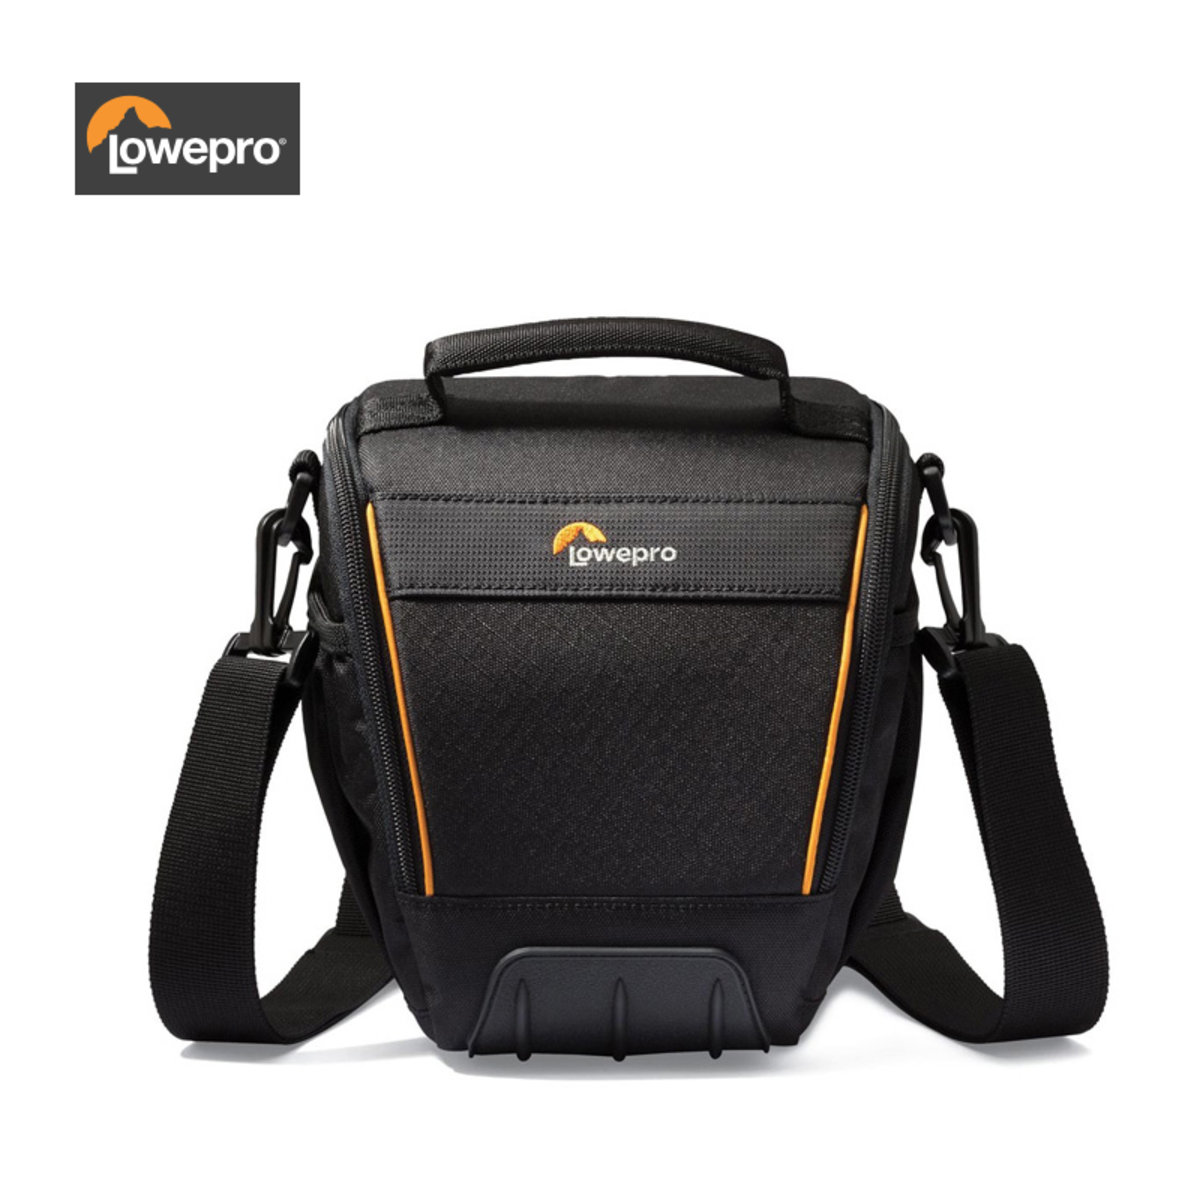 Lowepro - Lowepro Adventura TLZ 30 II 相機袋 (黑色)